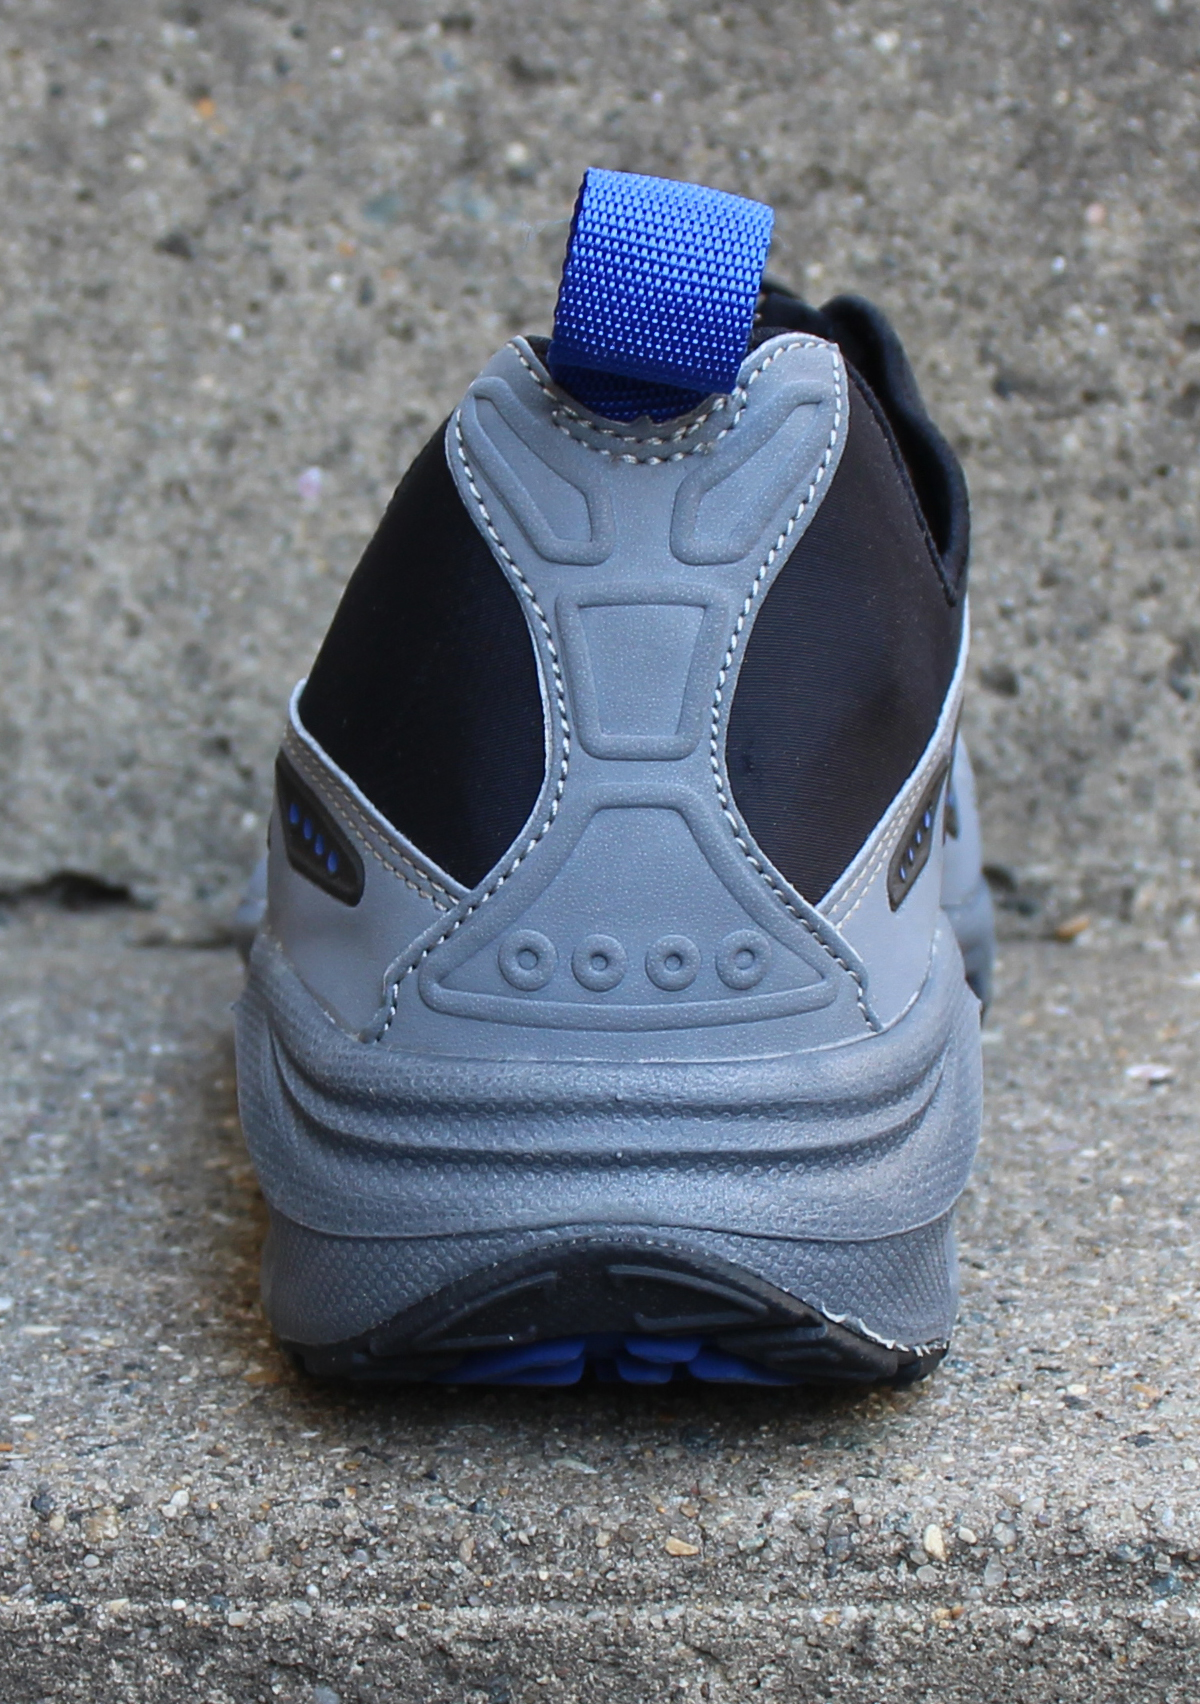 low priced d9aa1 8bc38 Nike Air Sunder Max Black   Varsity Royal   Neutral Grey   3M DS — Roots